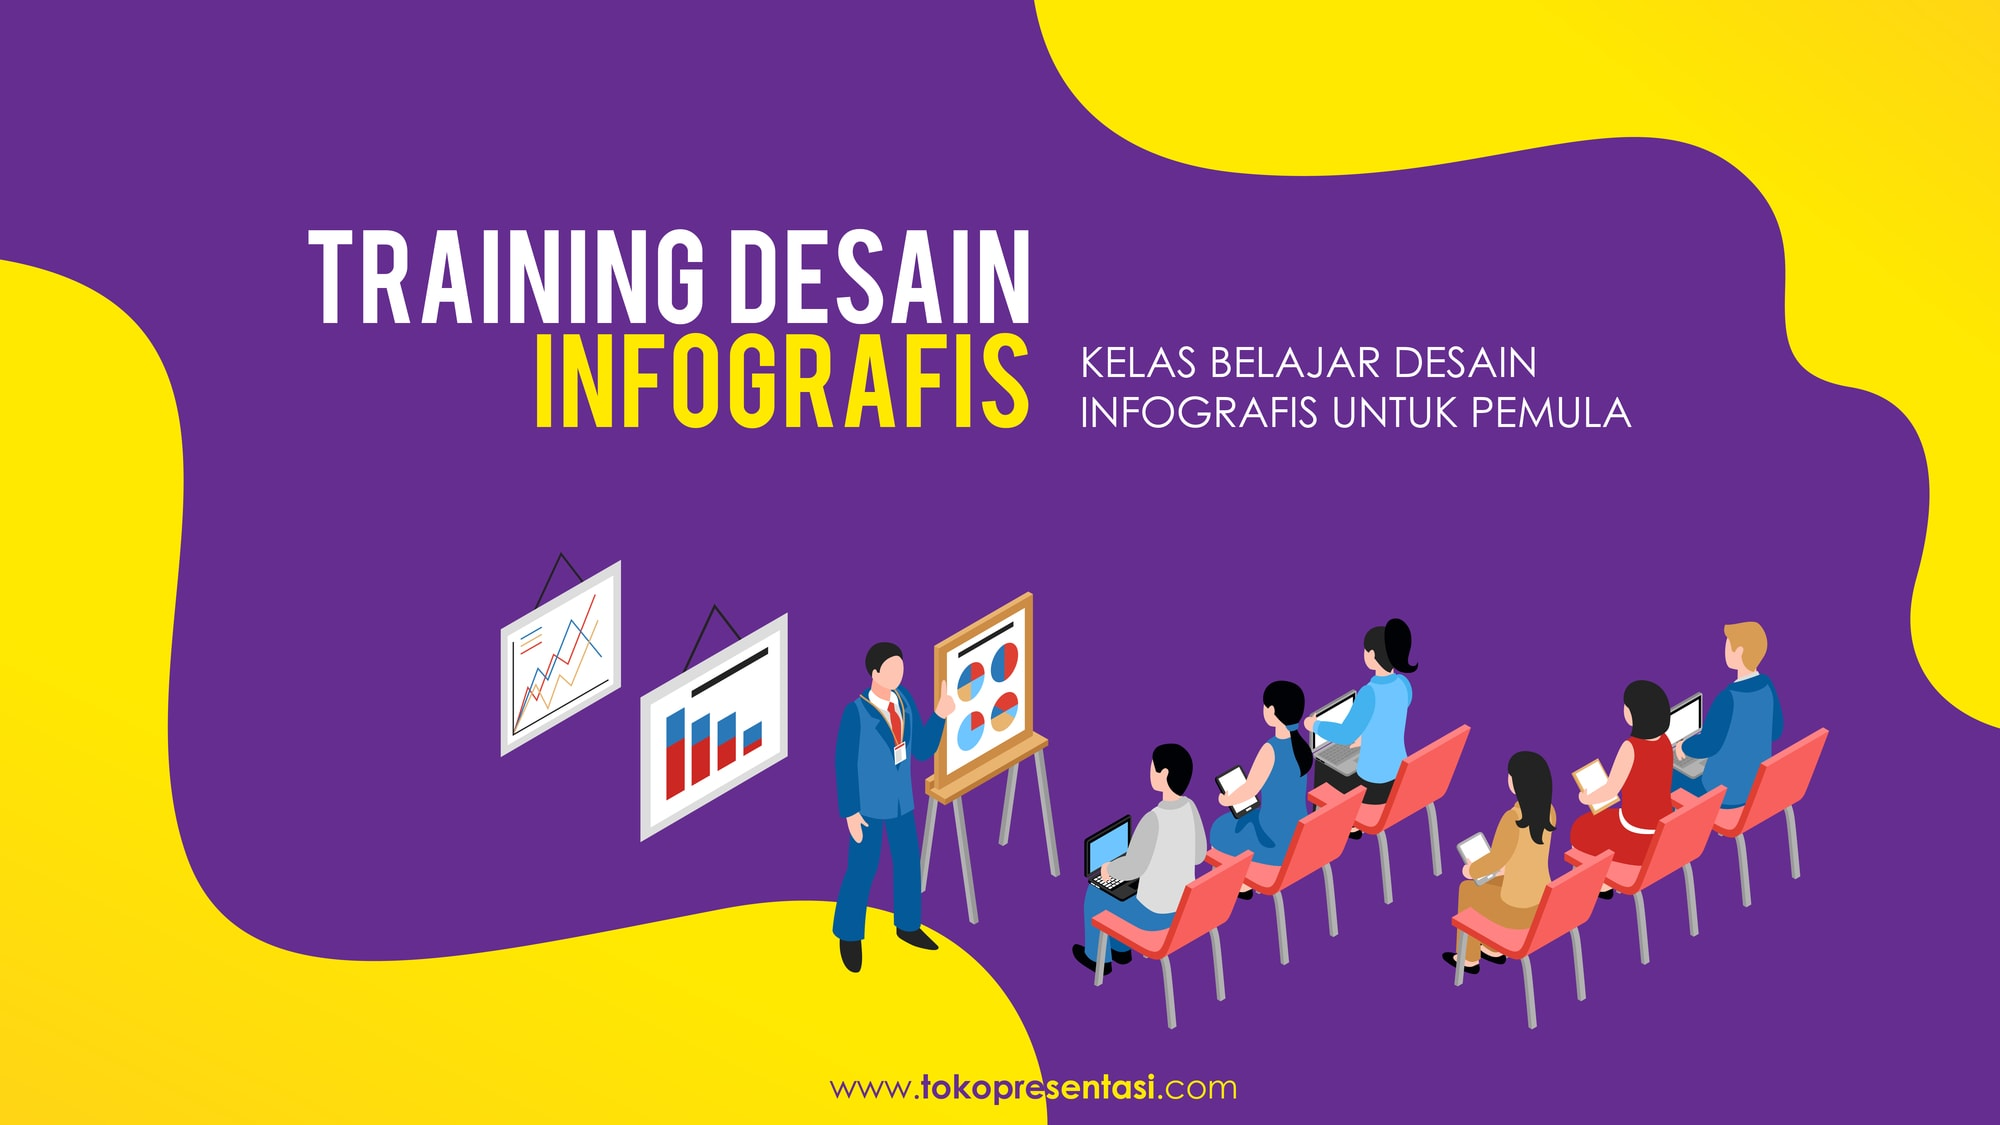 Pelatihan Training Desain Infografis PPT Corporate University IPC Tokopresentasi